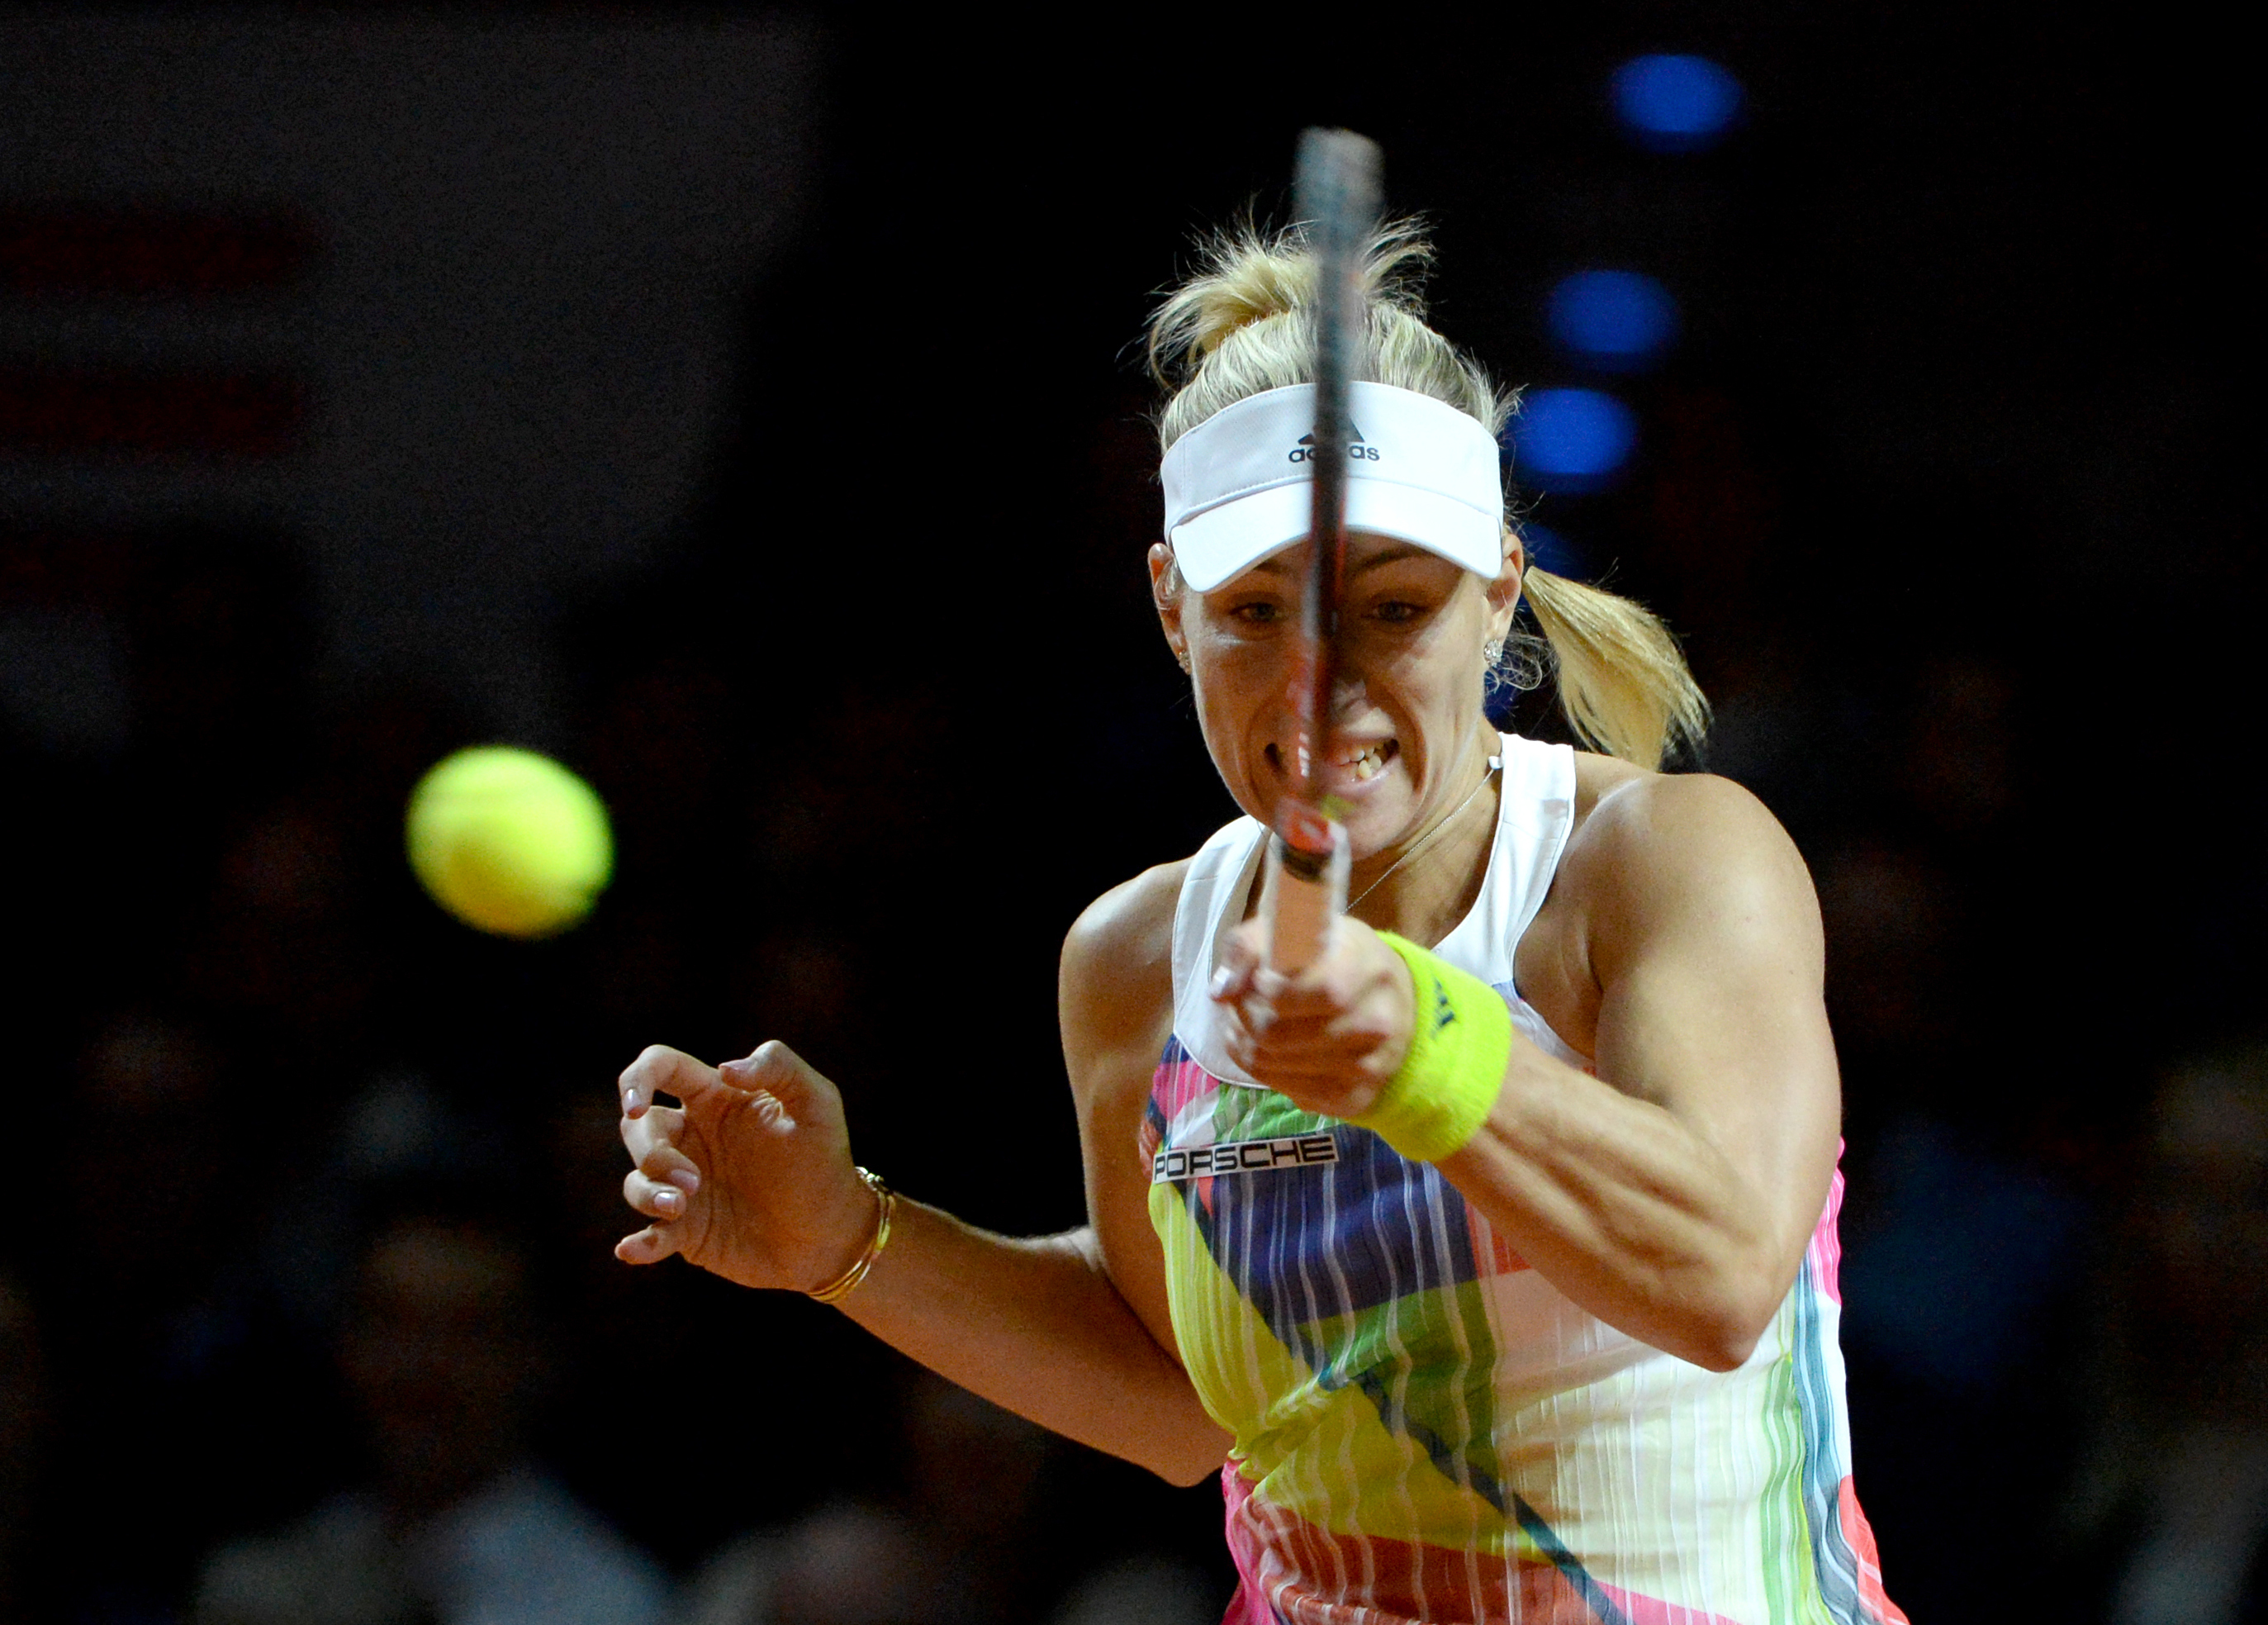 Germany's Angelique Kerber returns a ball to Germany's Laura Siegemund during their final at the WTA tennis tournament in Stuttgart, southern Germany, Sunday, April 24, 2016. (Marijan Murat/dpa via AP)